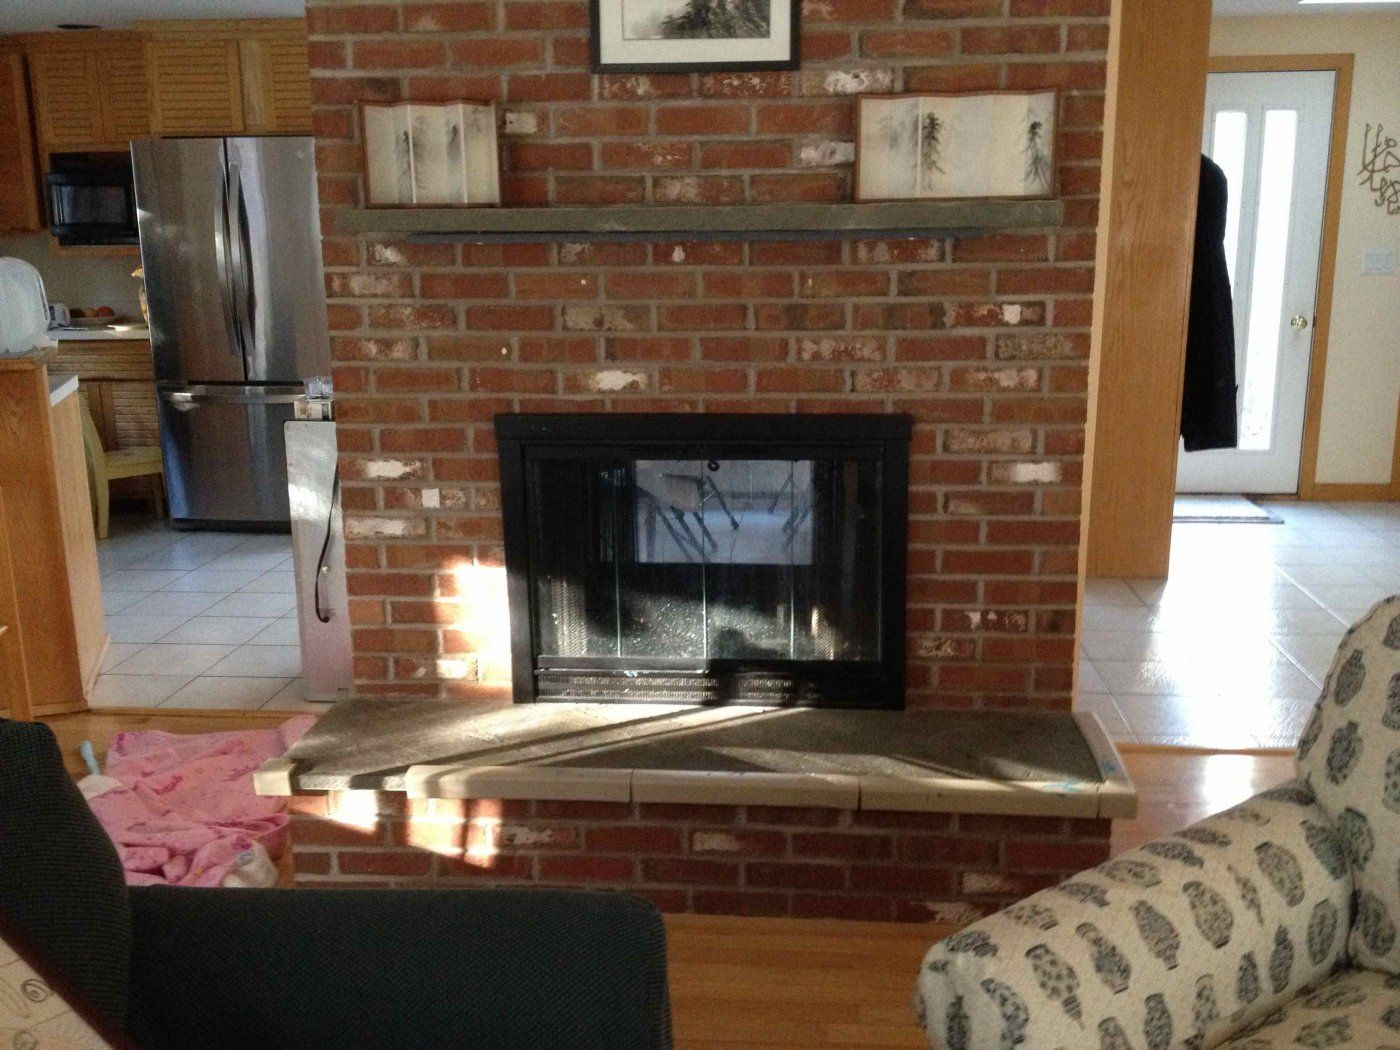 advice putting electric outlet in fireplace hearth com forums home